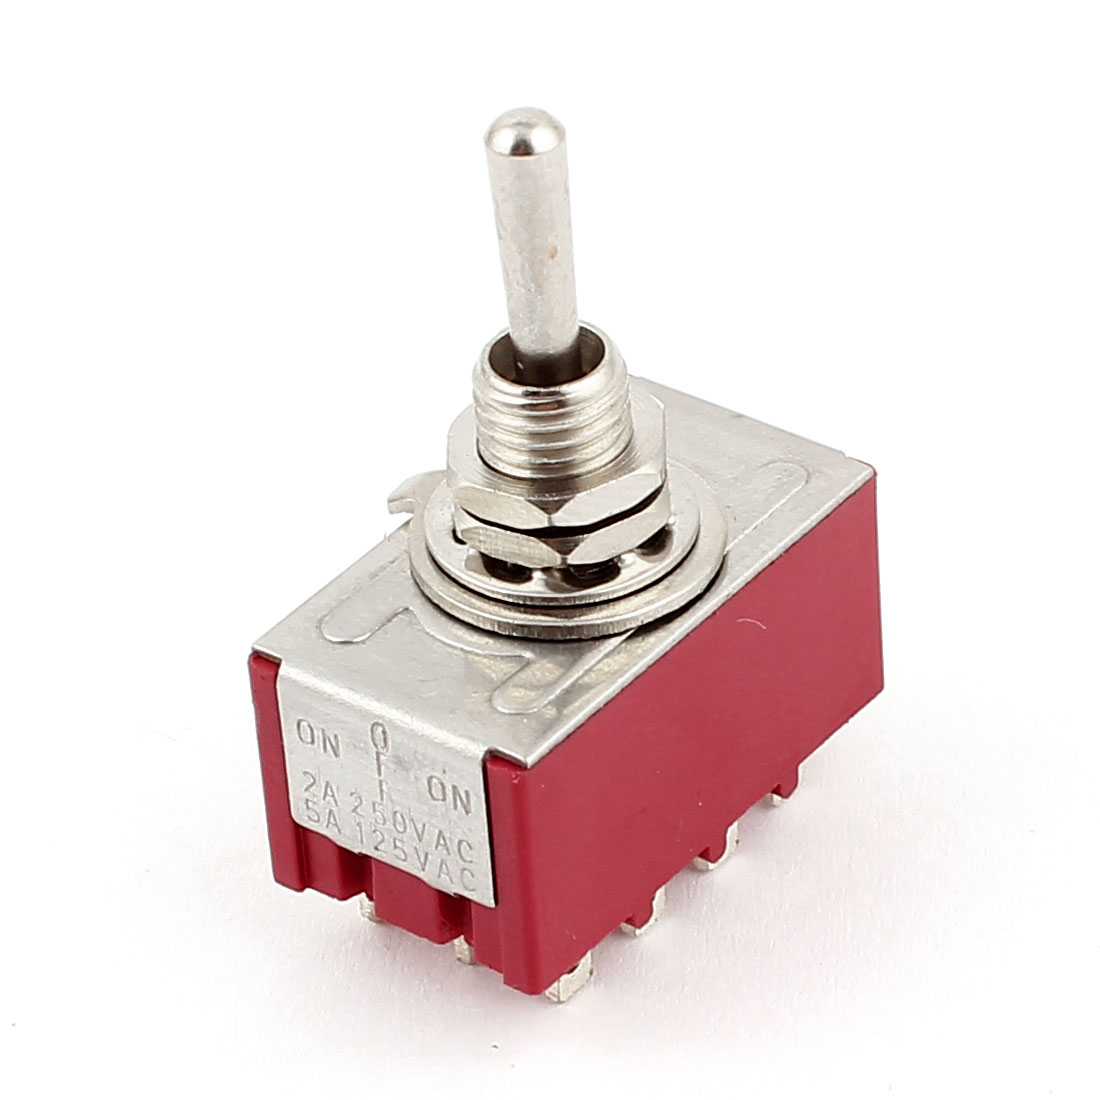 AC 2A 250V 5A 125V 4PDT ON/OFF/ON 3 Positions 12 Pin Electric Toggle Switch Red 6MM